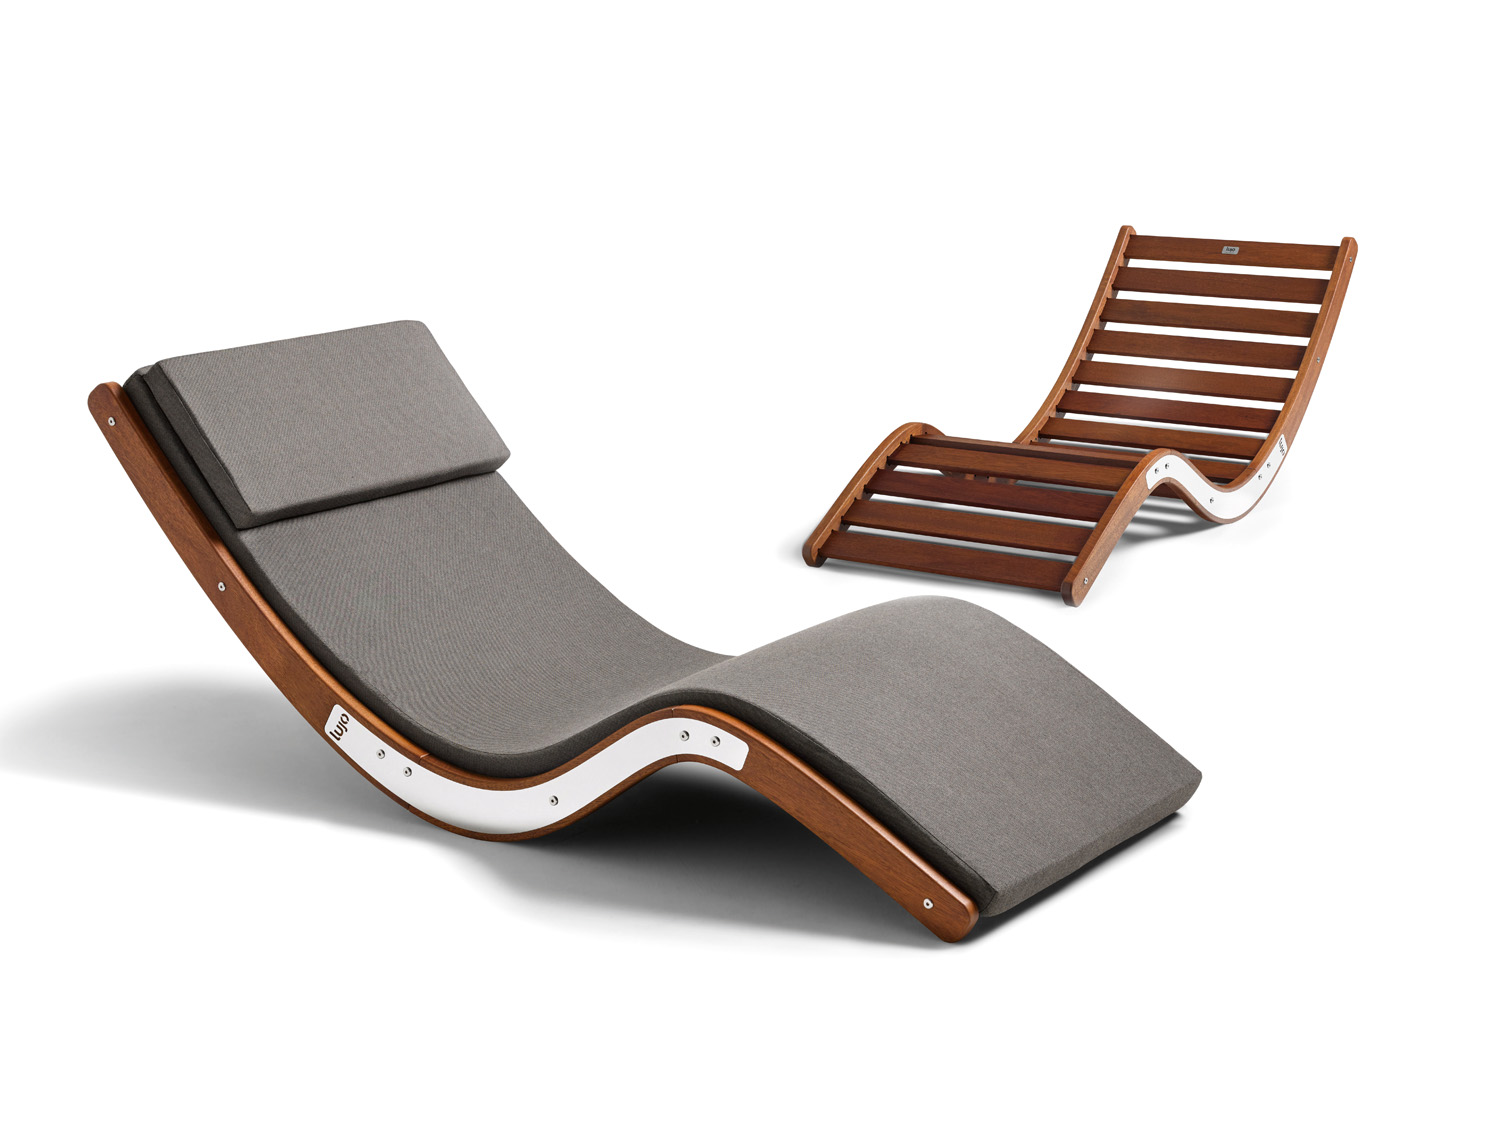 This sunlounger is made from kwila hardwood and is available from Lujo www.lujo.com.au